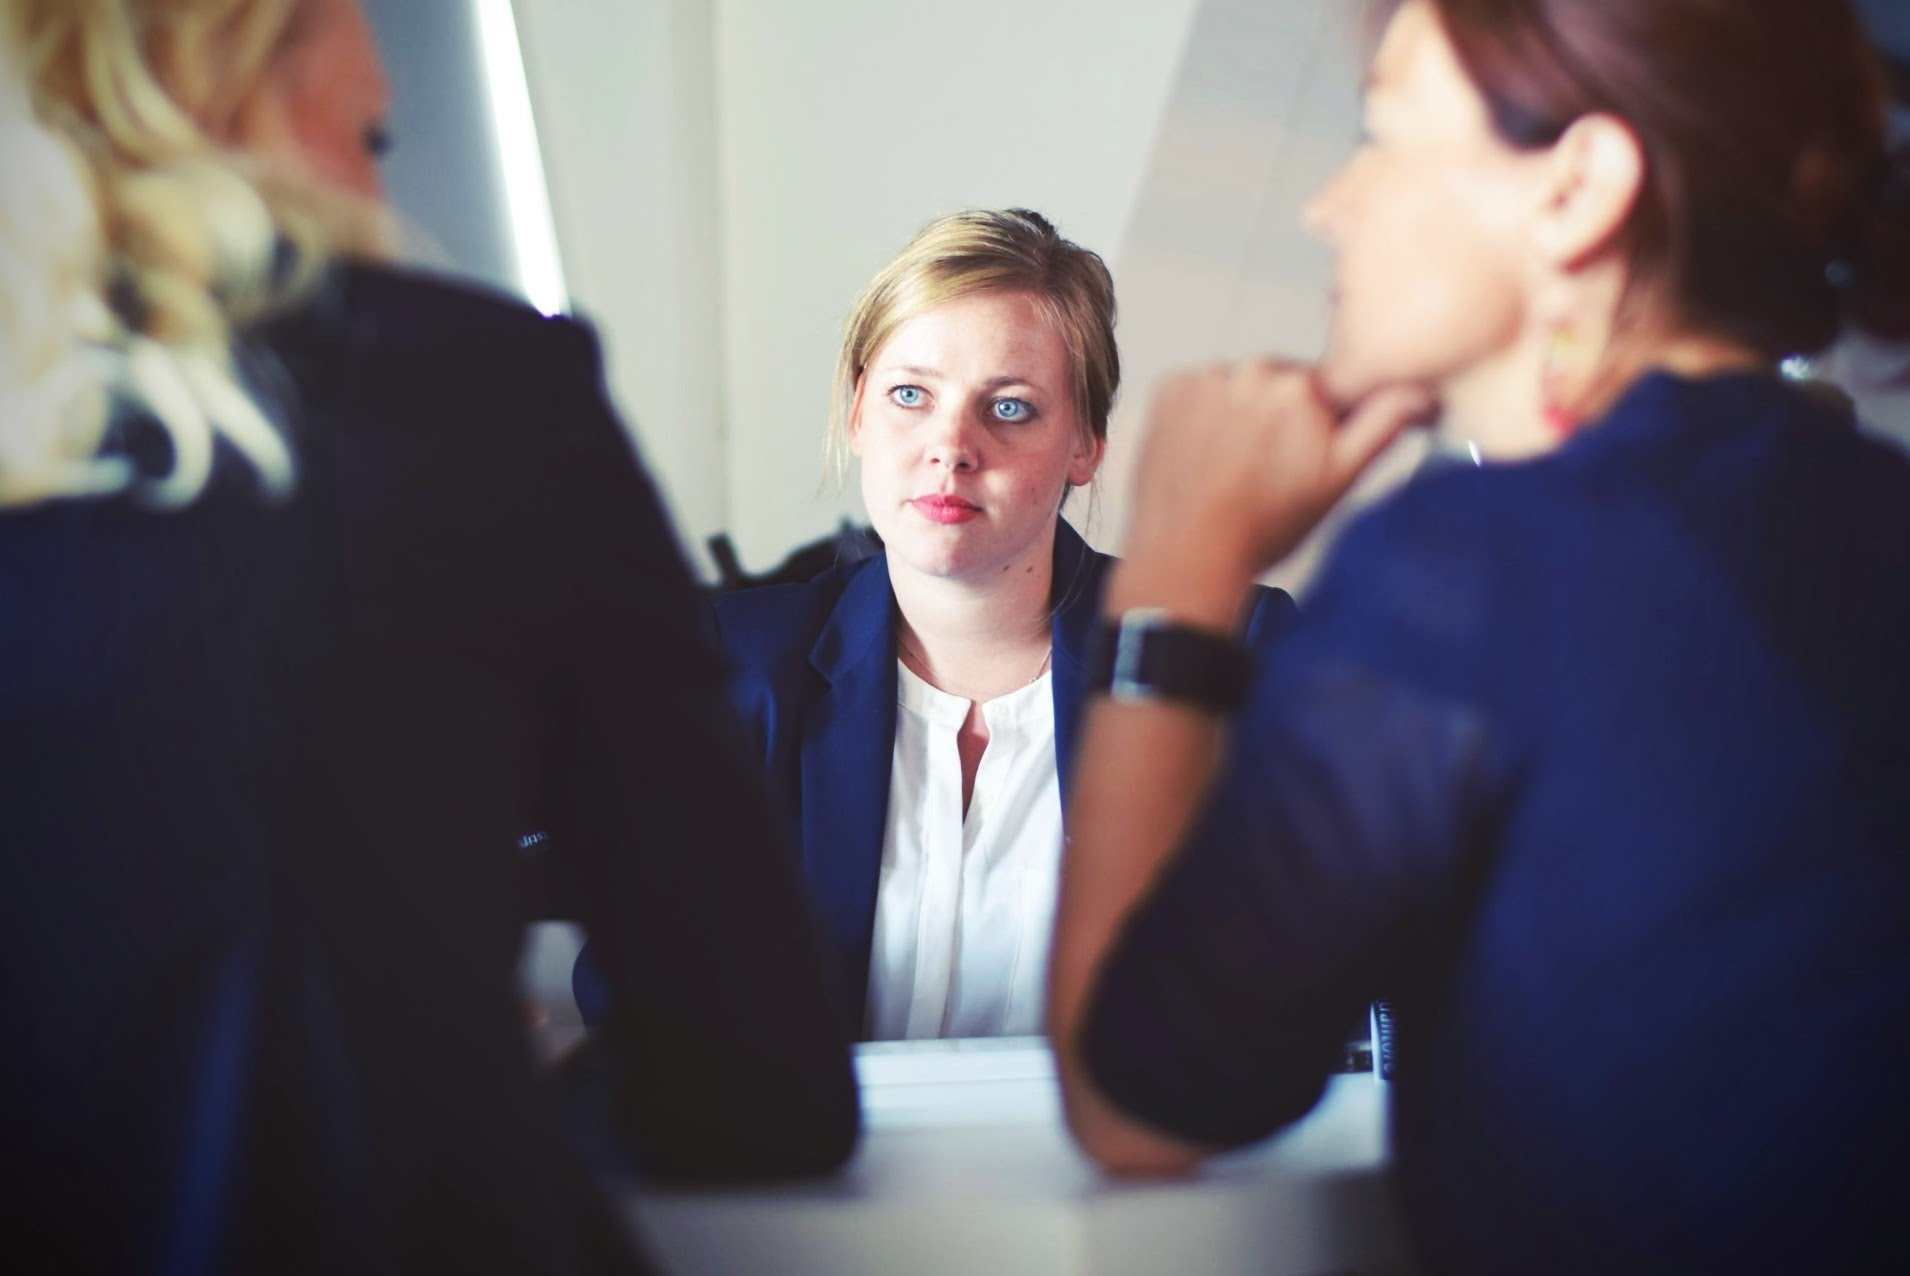 How to handle employee incidents and grievances